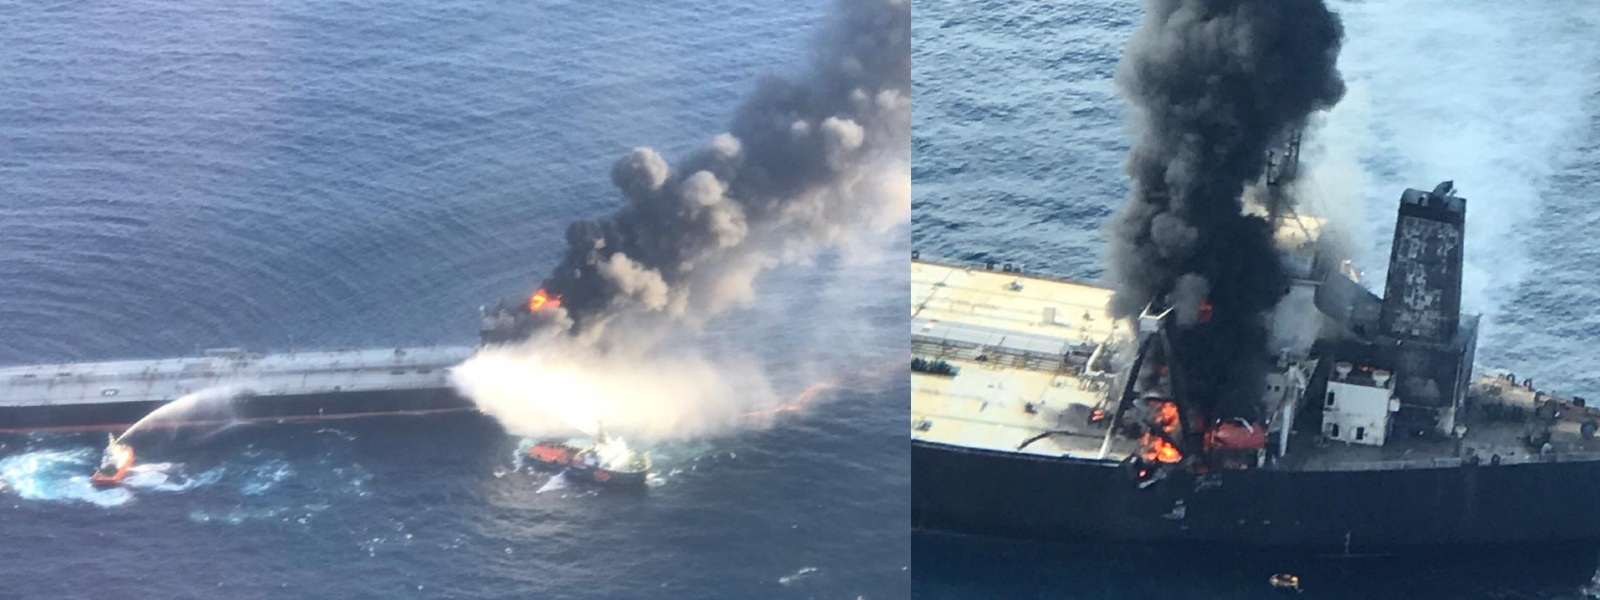 Fire onboard MT New Diamond contained into a greater extent; Sri Lanka Navy